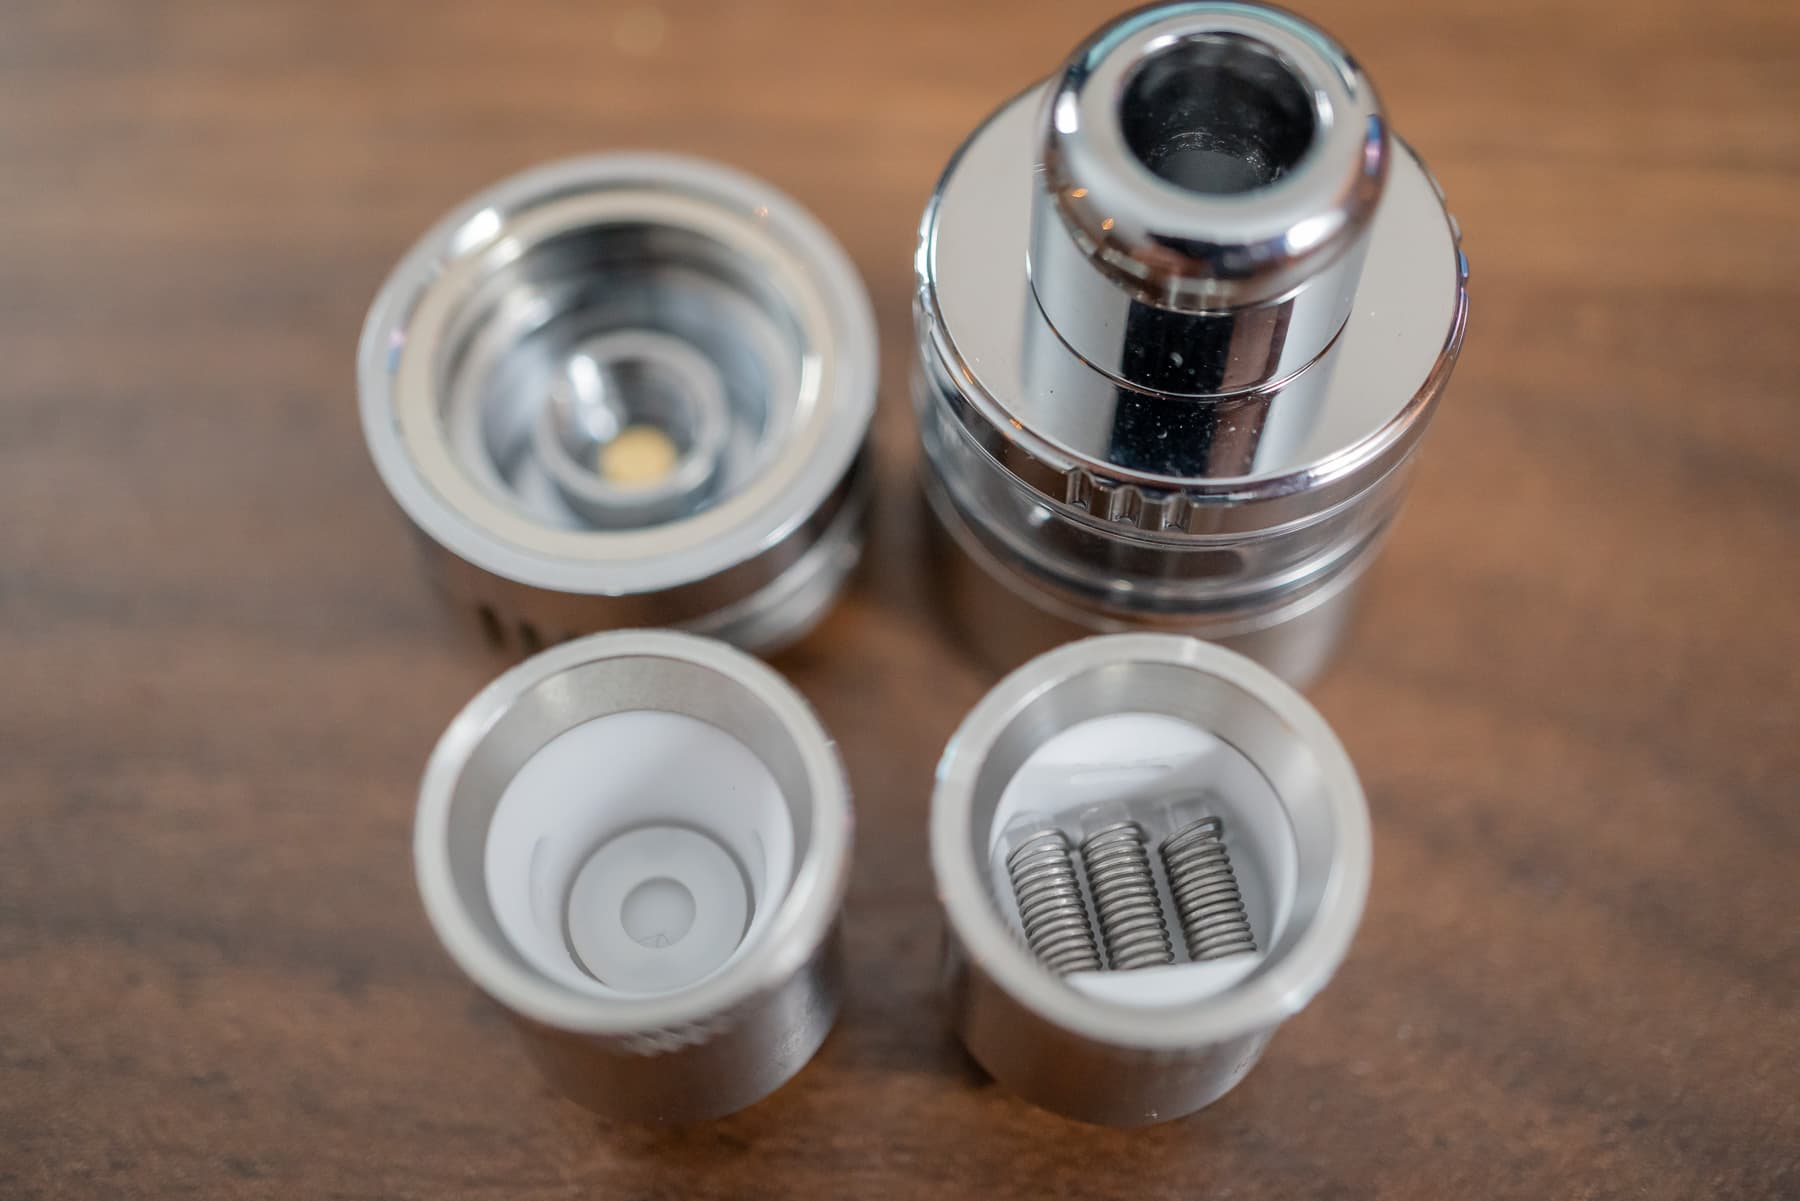 Coil Types of Extract Vaporizers: From Ceramic to Quartz